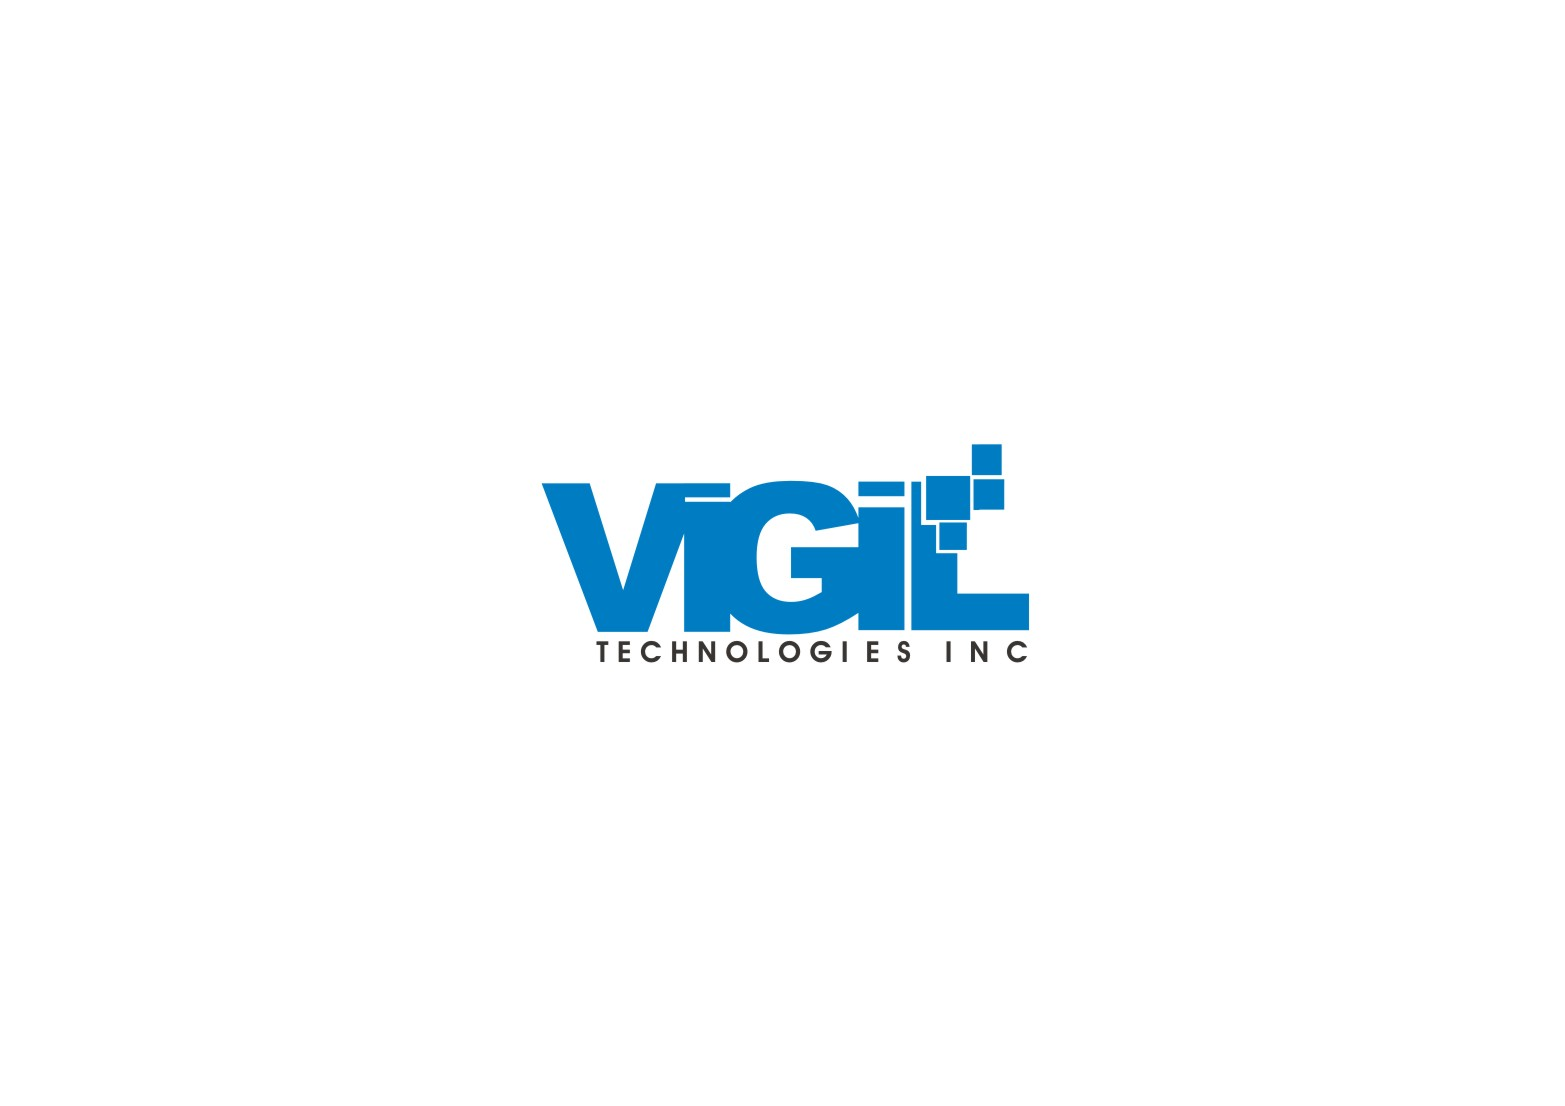 Logo Design by yanxsant - Entry No. 59 in the Logo Design Contest New Logo Design for Vigil Technologies Inc..